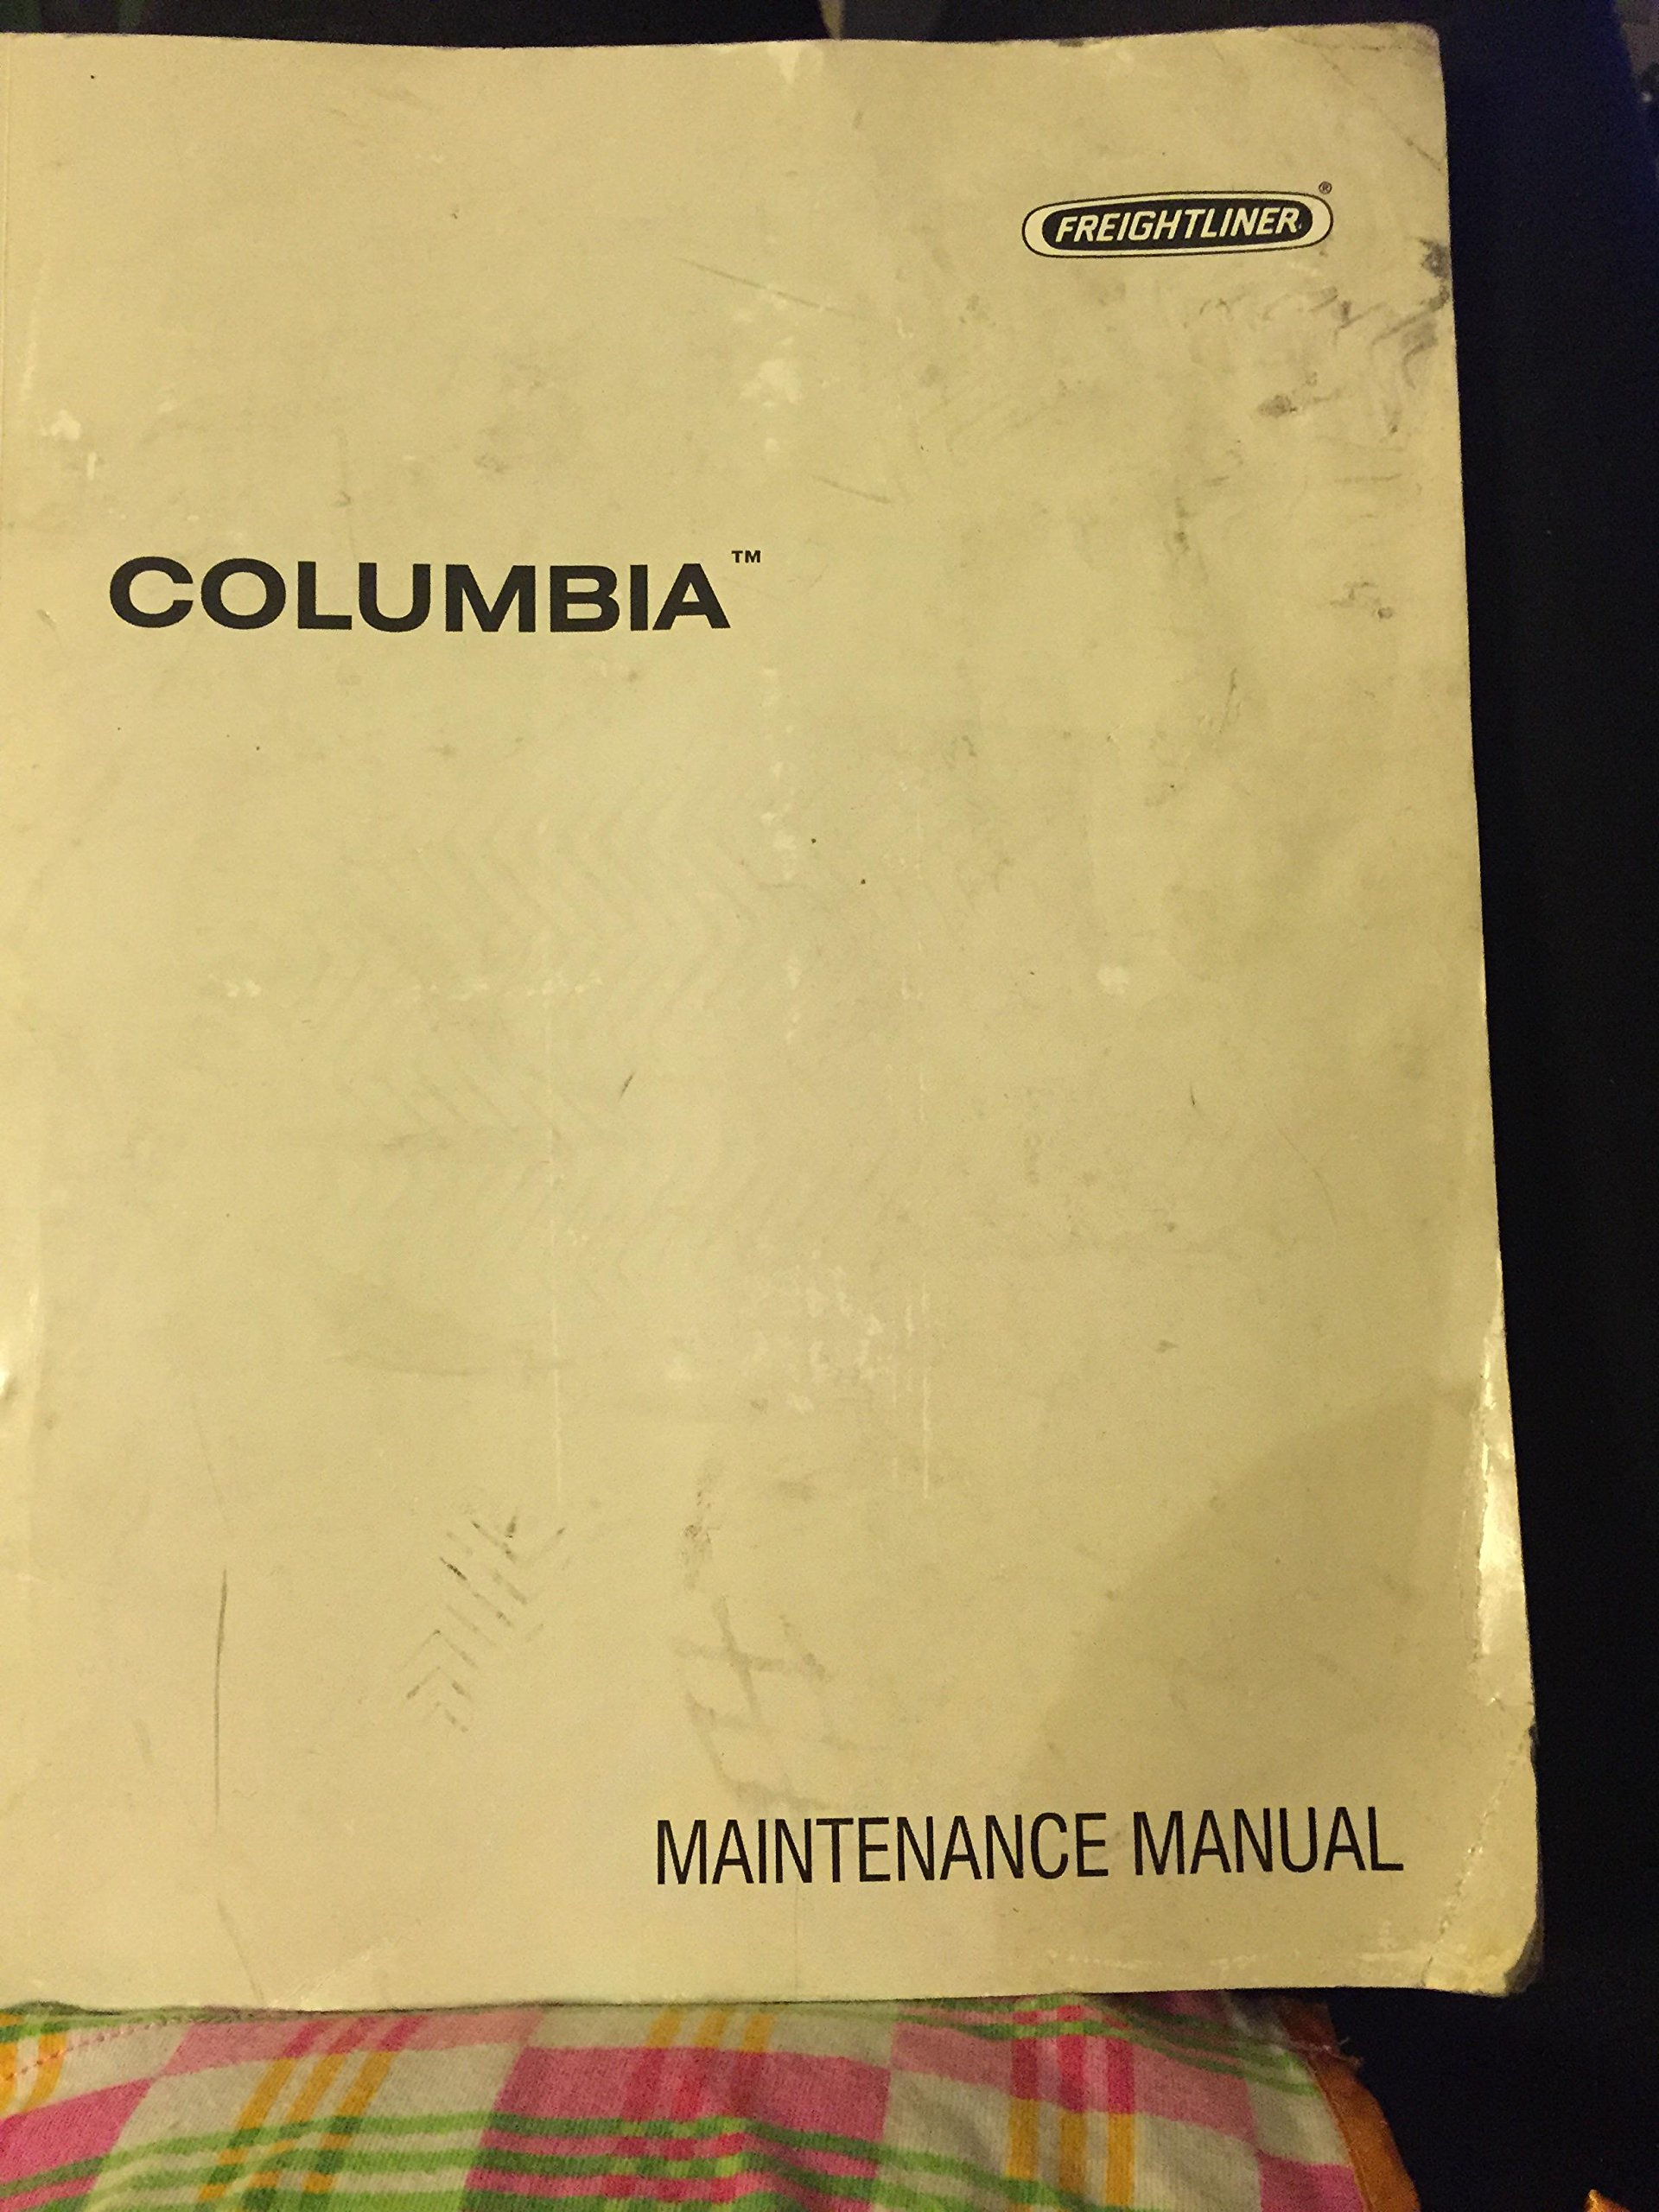 Freightliner Columbia Maintenance Manual: Models CL 112 & CL 120:  Freightliner Staff: Amazon.com: Books